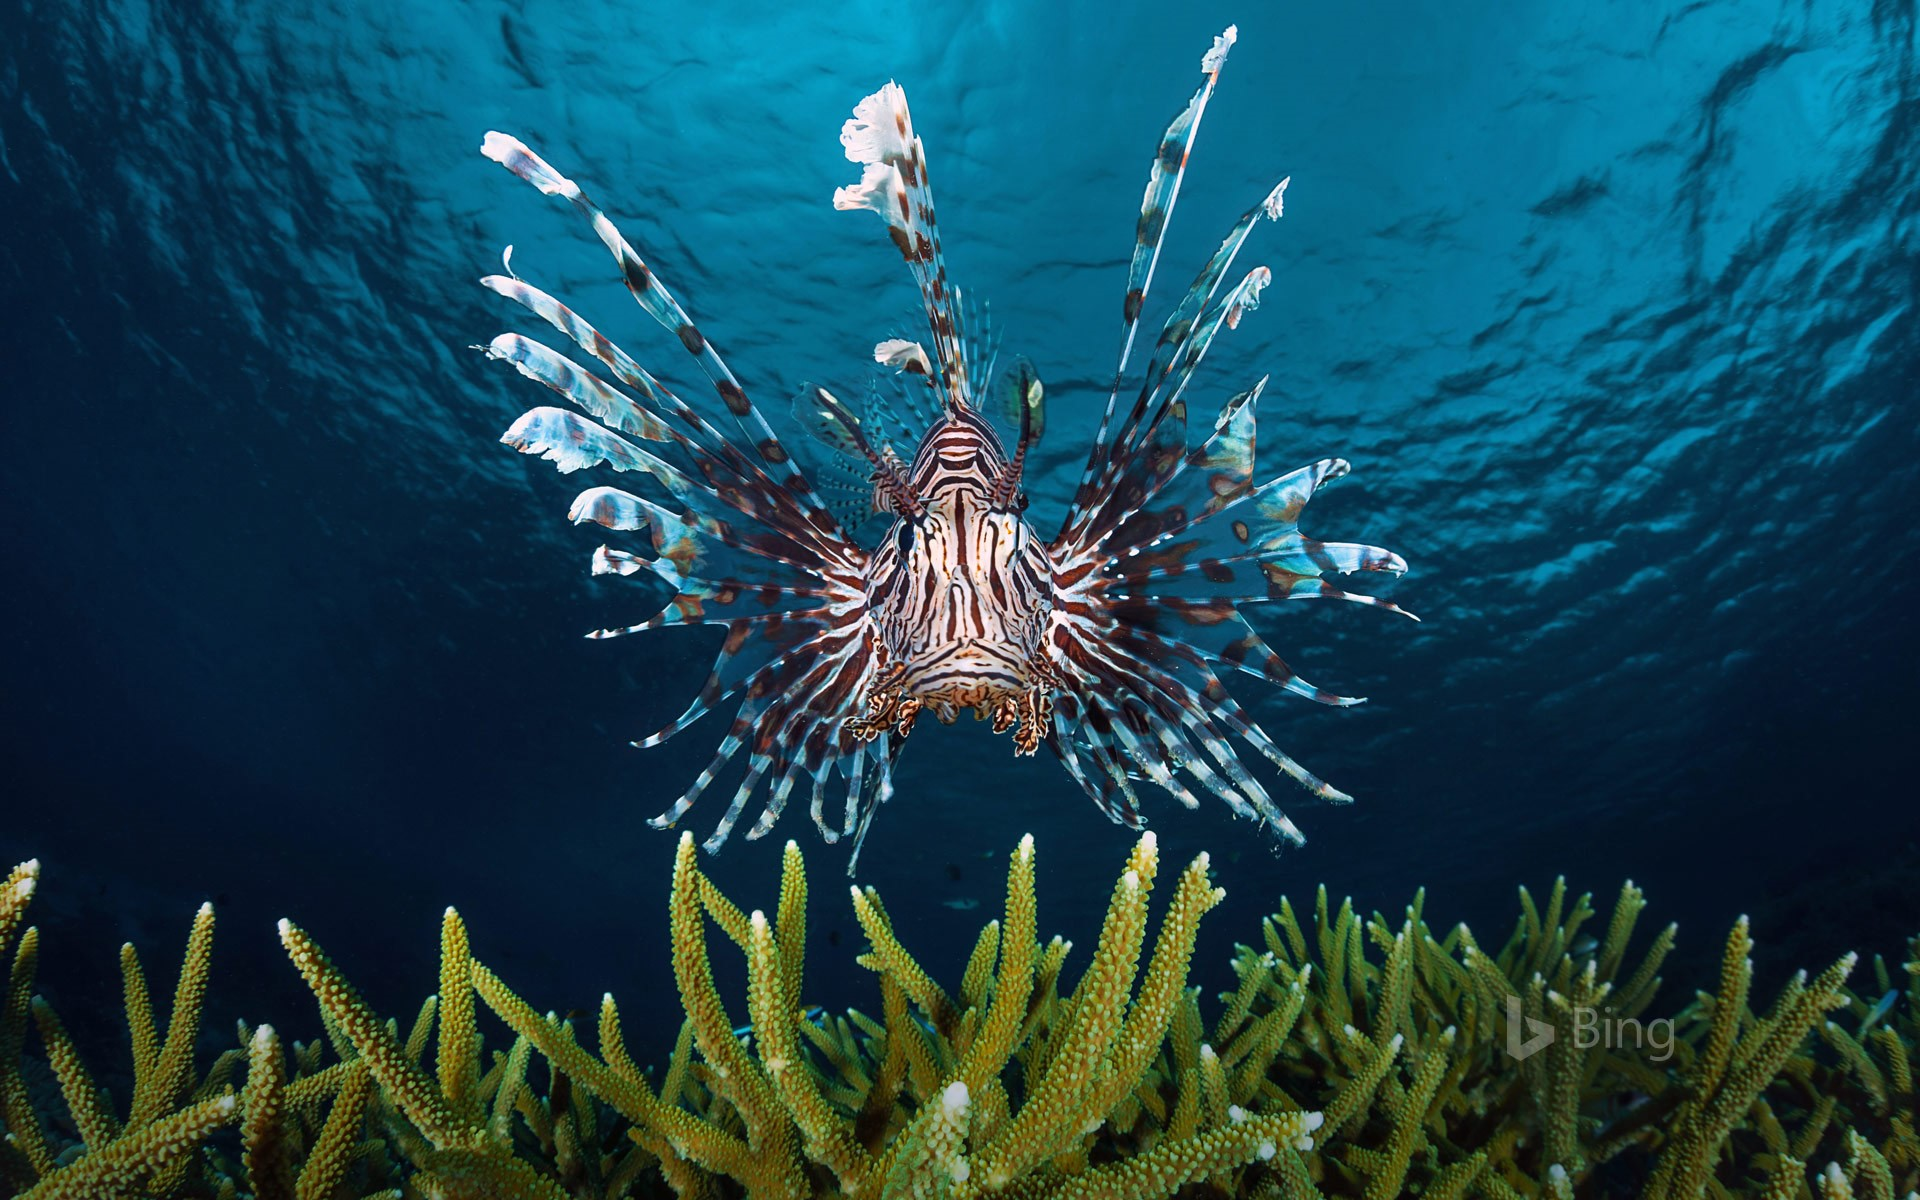 Lionfish swimming off the coast of Indonesia